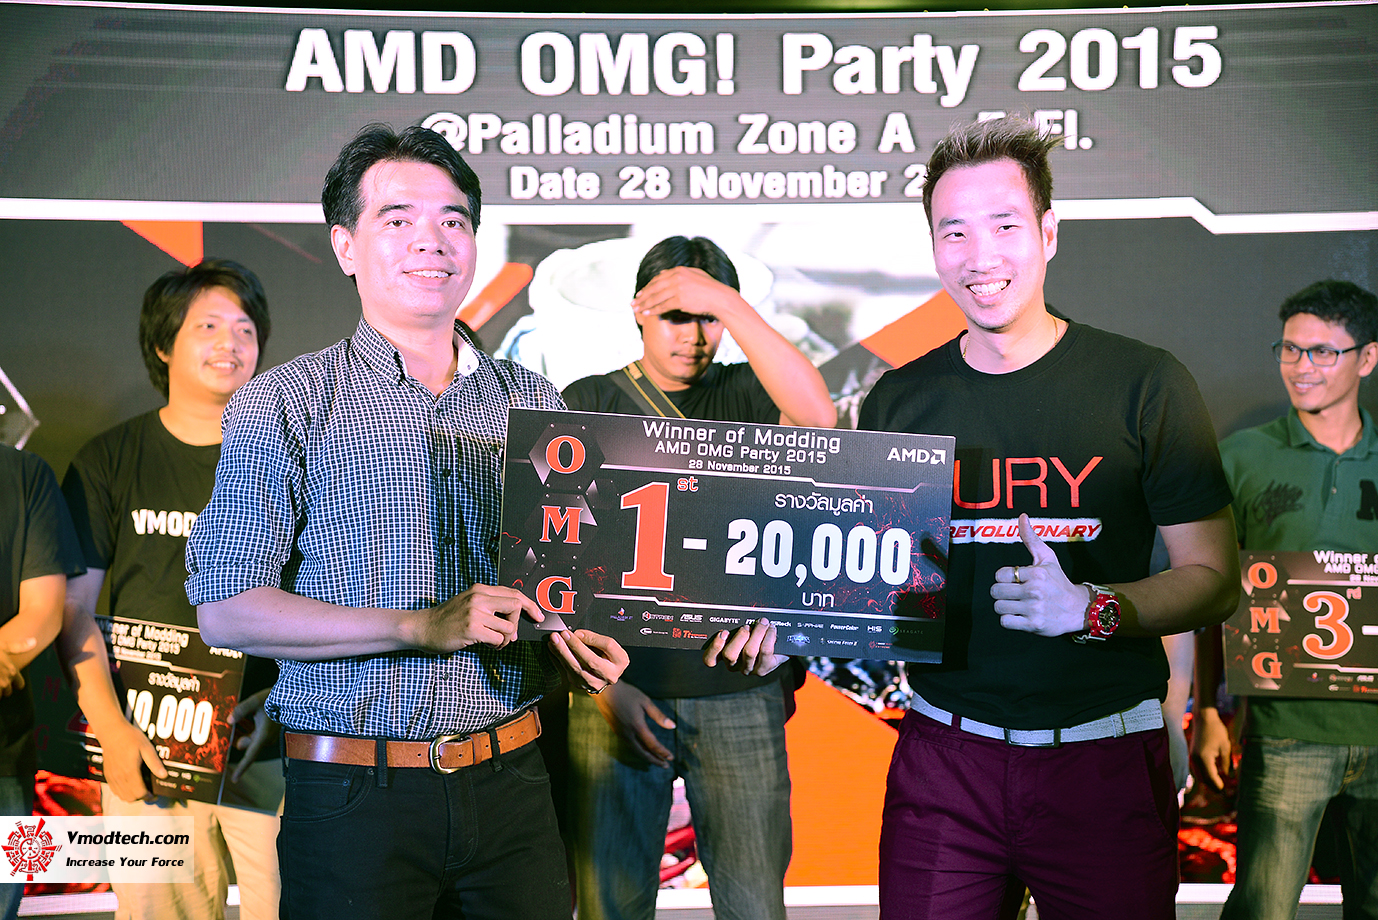 dsc 8092 AMD OMG! Party 2015 (AMD Overclock Modding Gaming Party 2015)